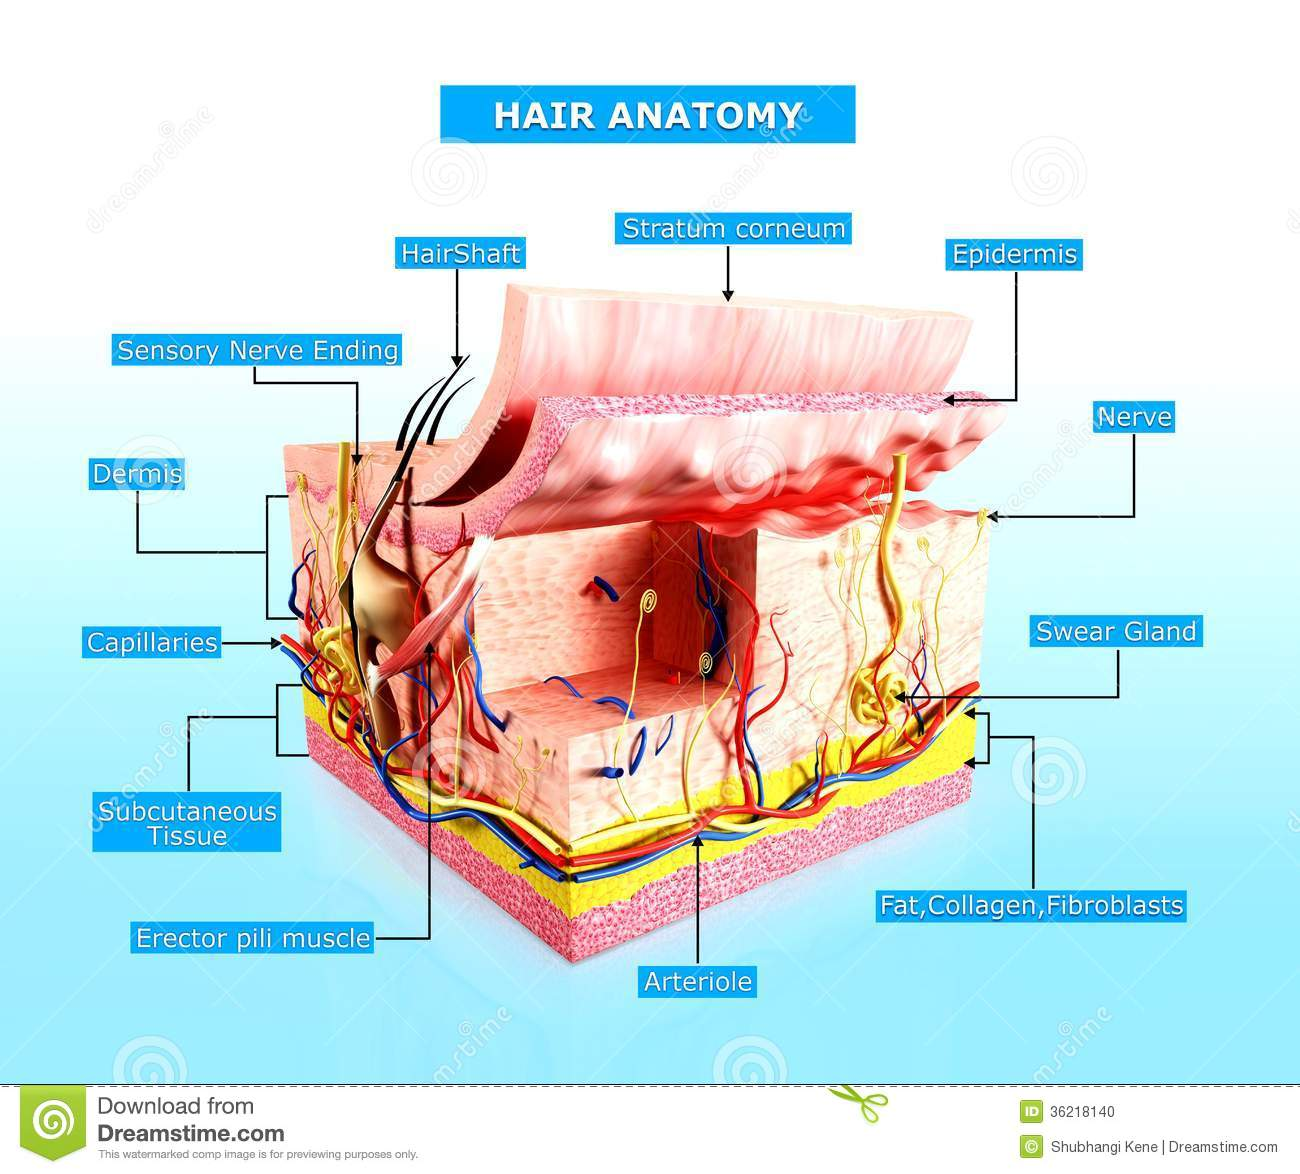 skin anatomy diagram labeled auto transformer internal wiring front view of human cutway stock illustration